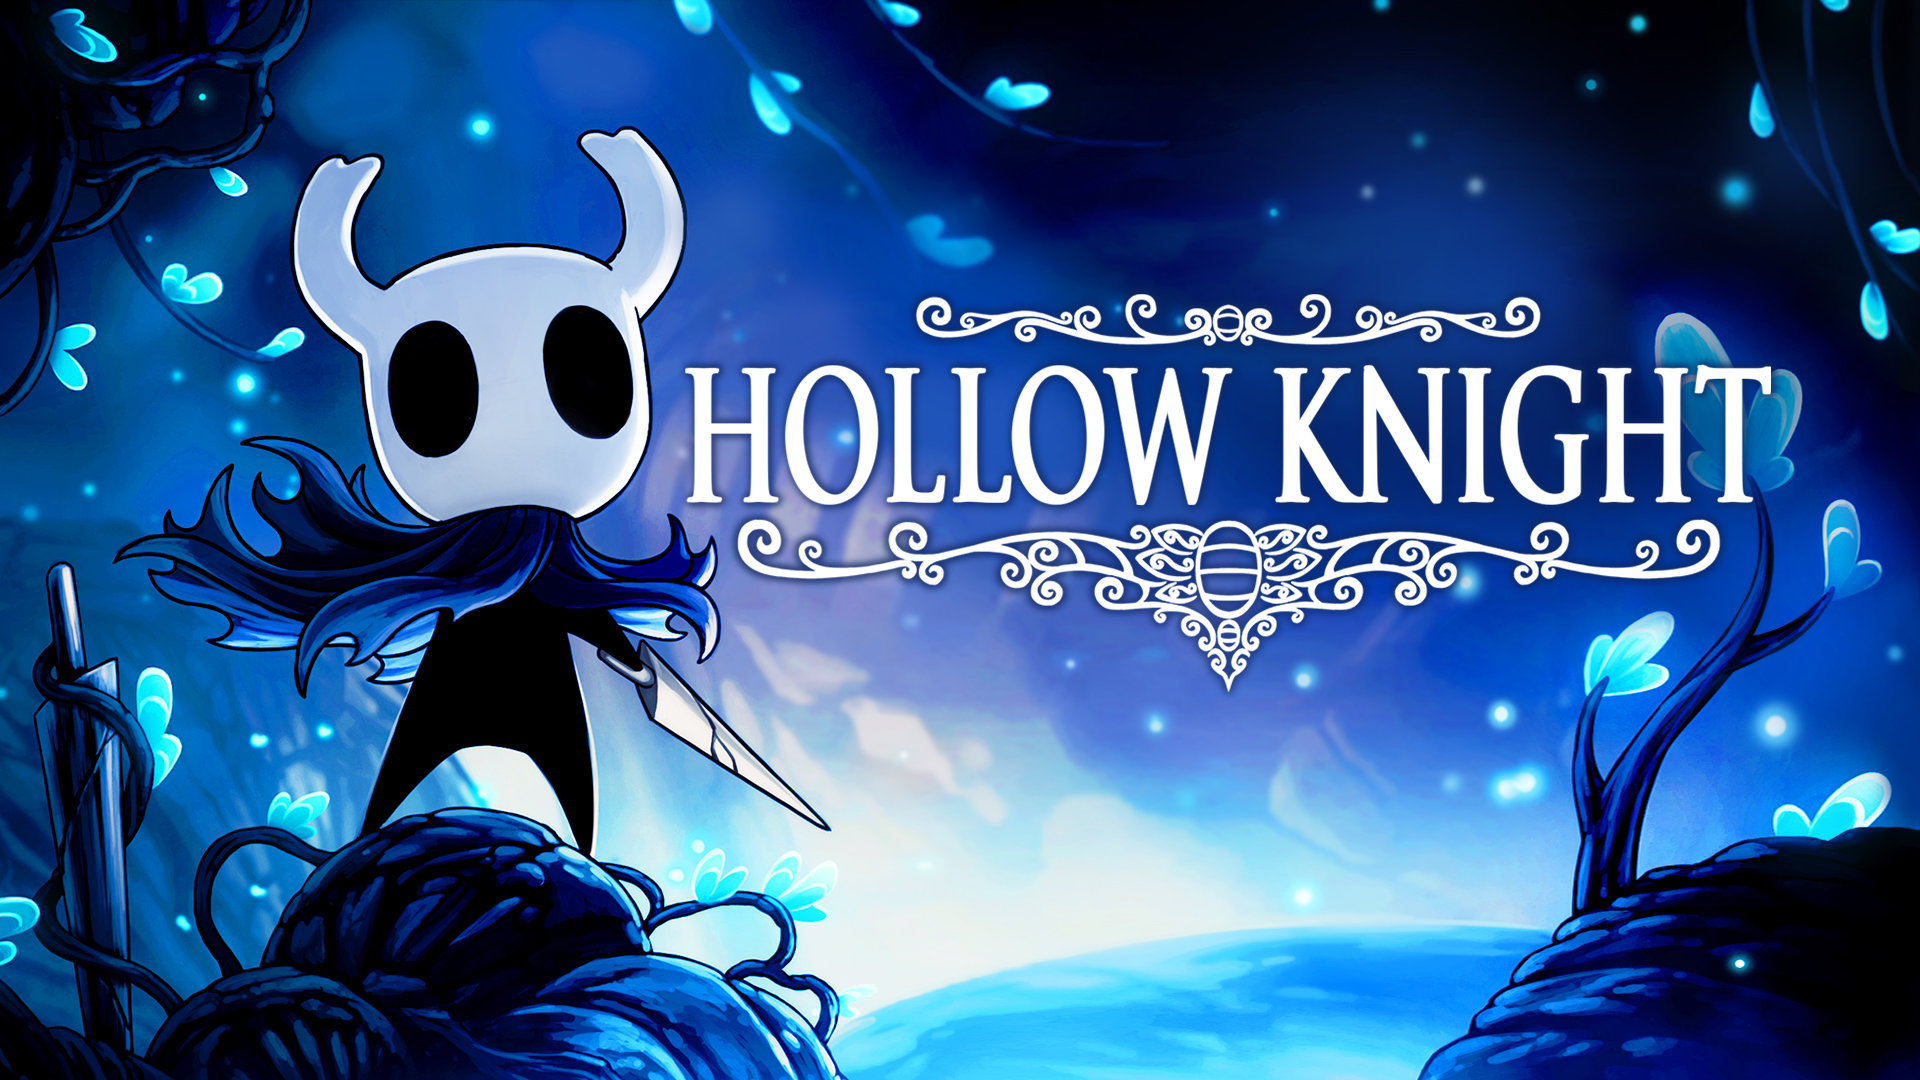 HOLLOW KNIGHT download for android